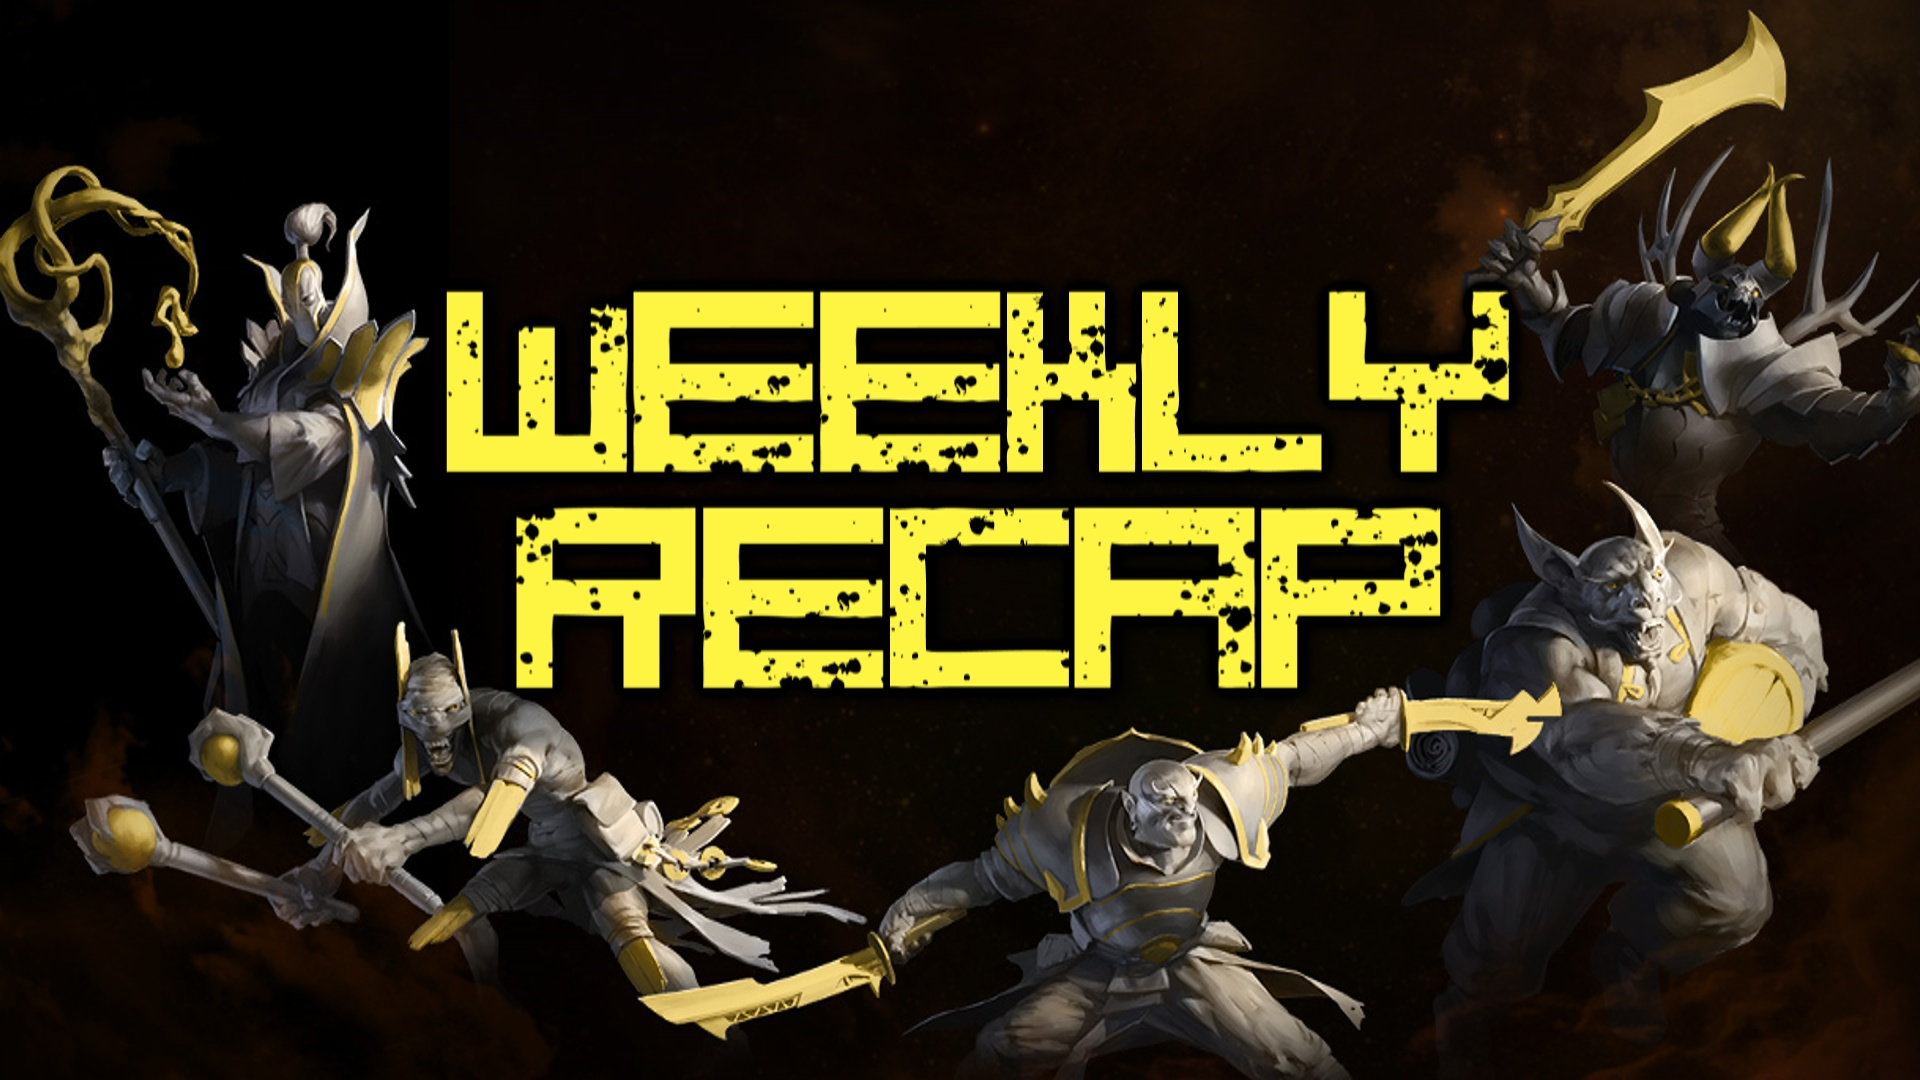 MMOHuts Weekly Recap #251 Aug. 3rd - Dota 2, Paladins, Robocraft & More!